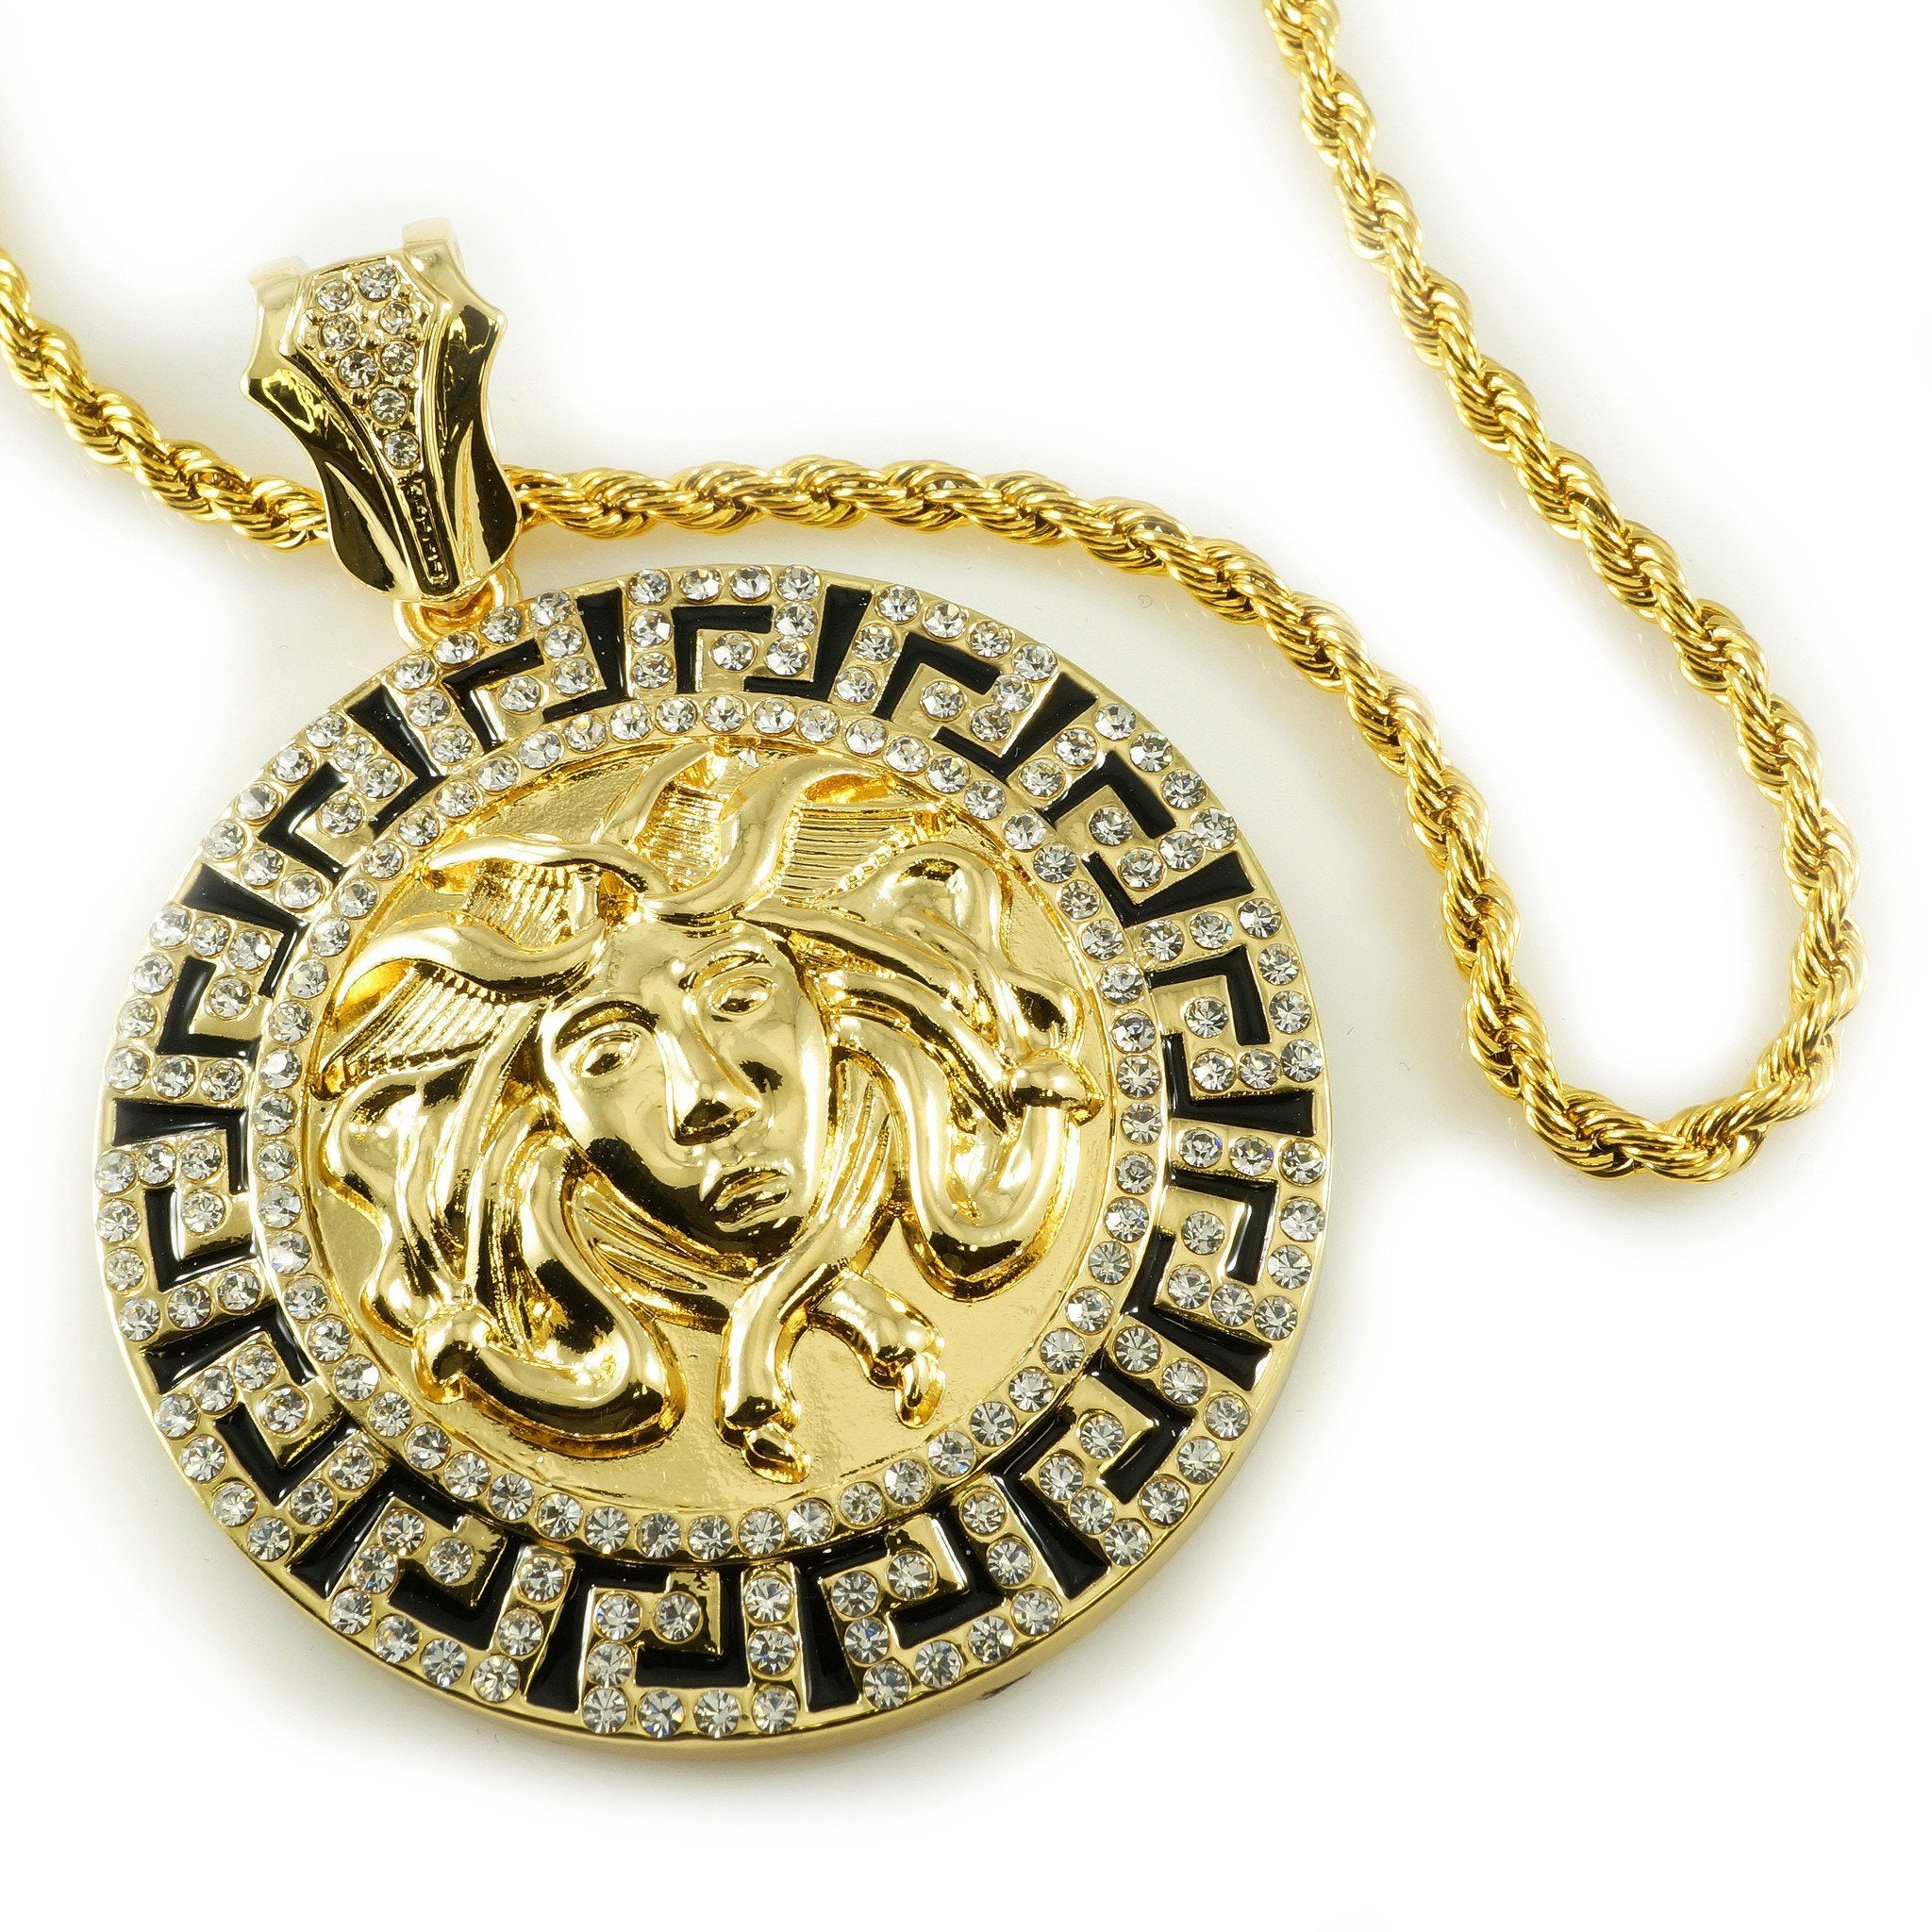 14k Gold Iced Medusa Pendant With Chain